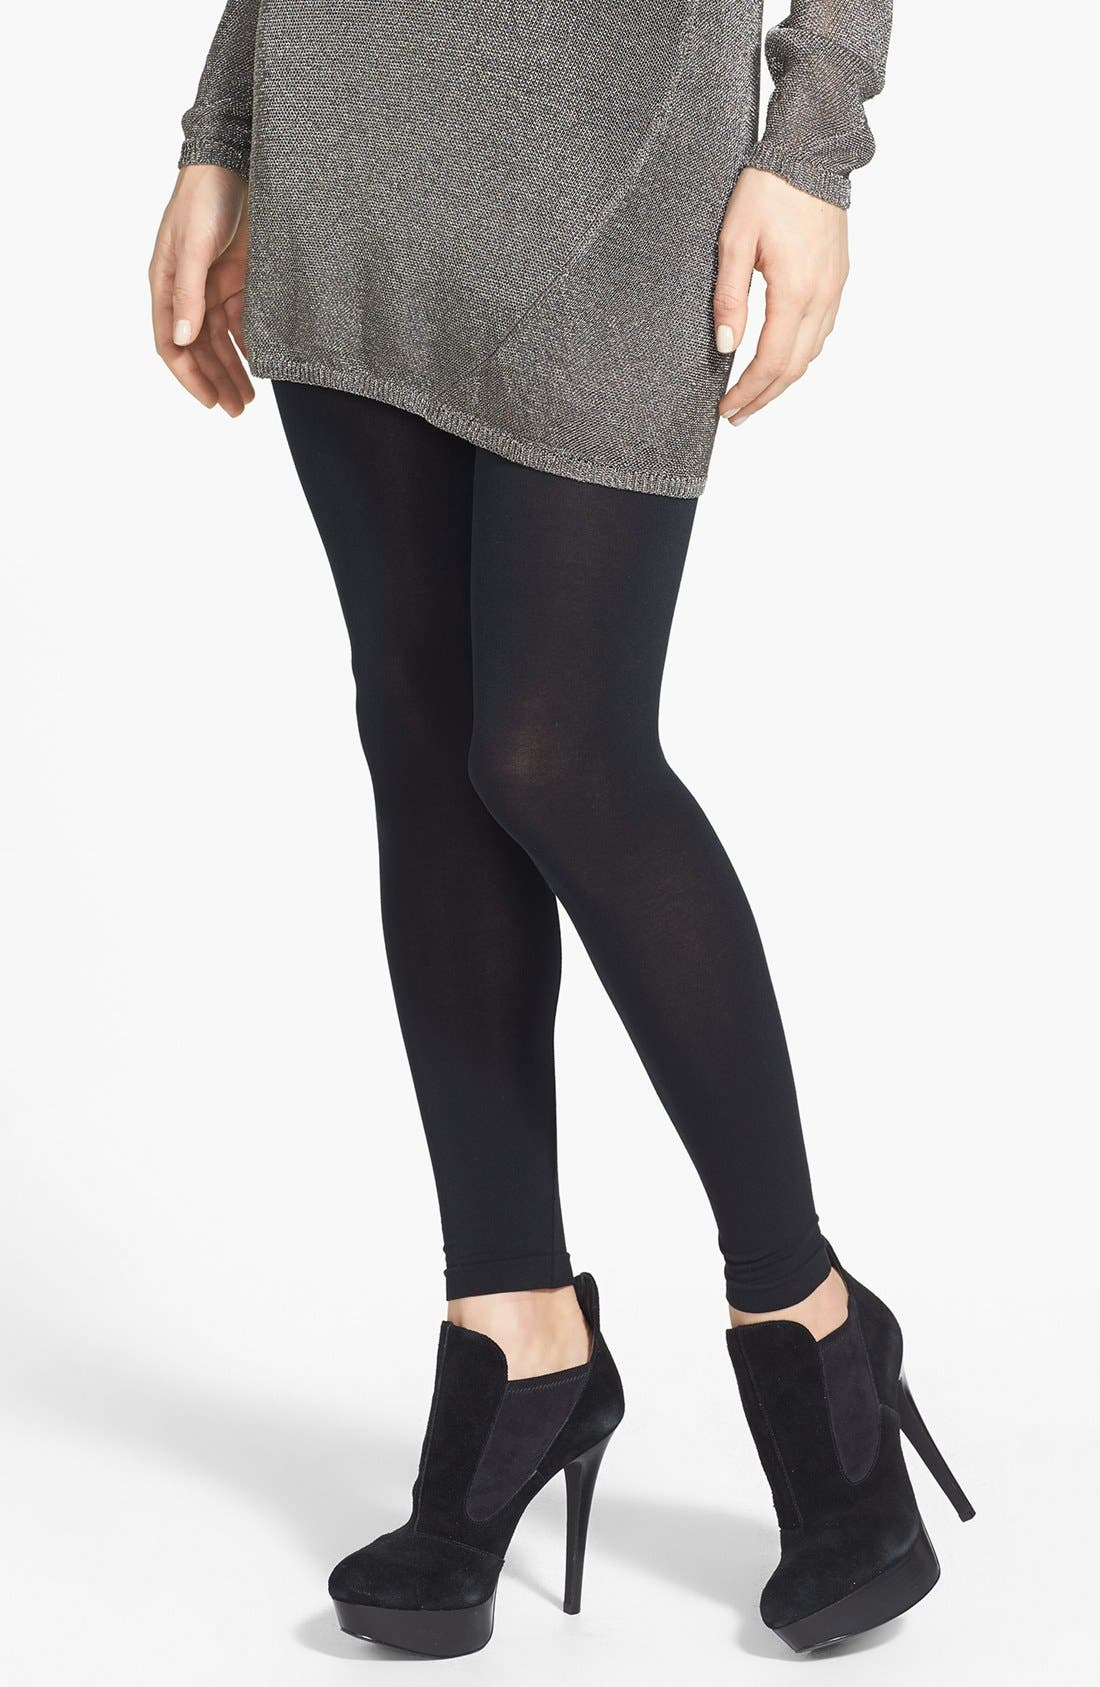 Main Image - Hue Seamless Leggings